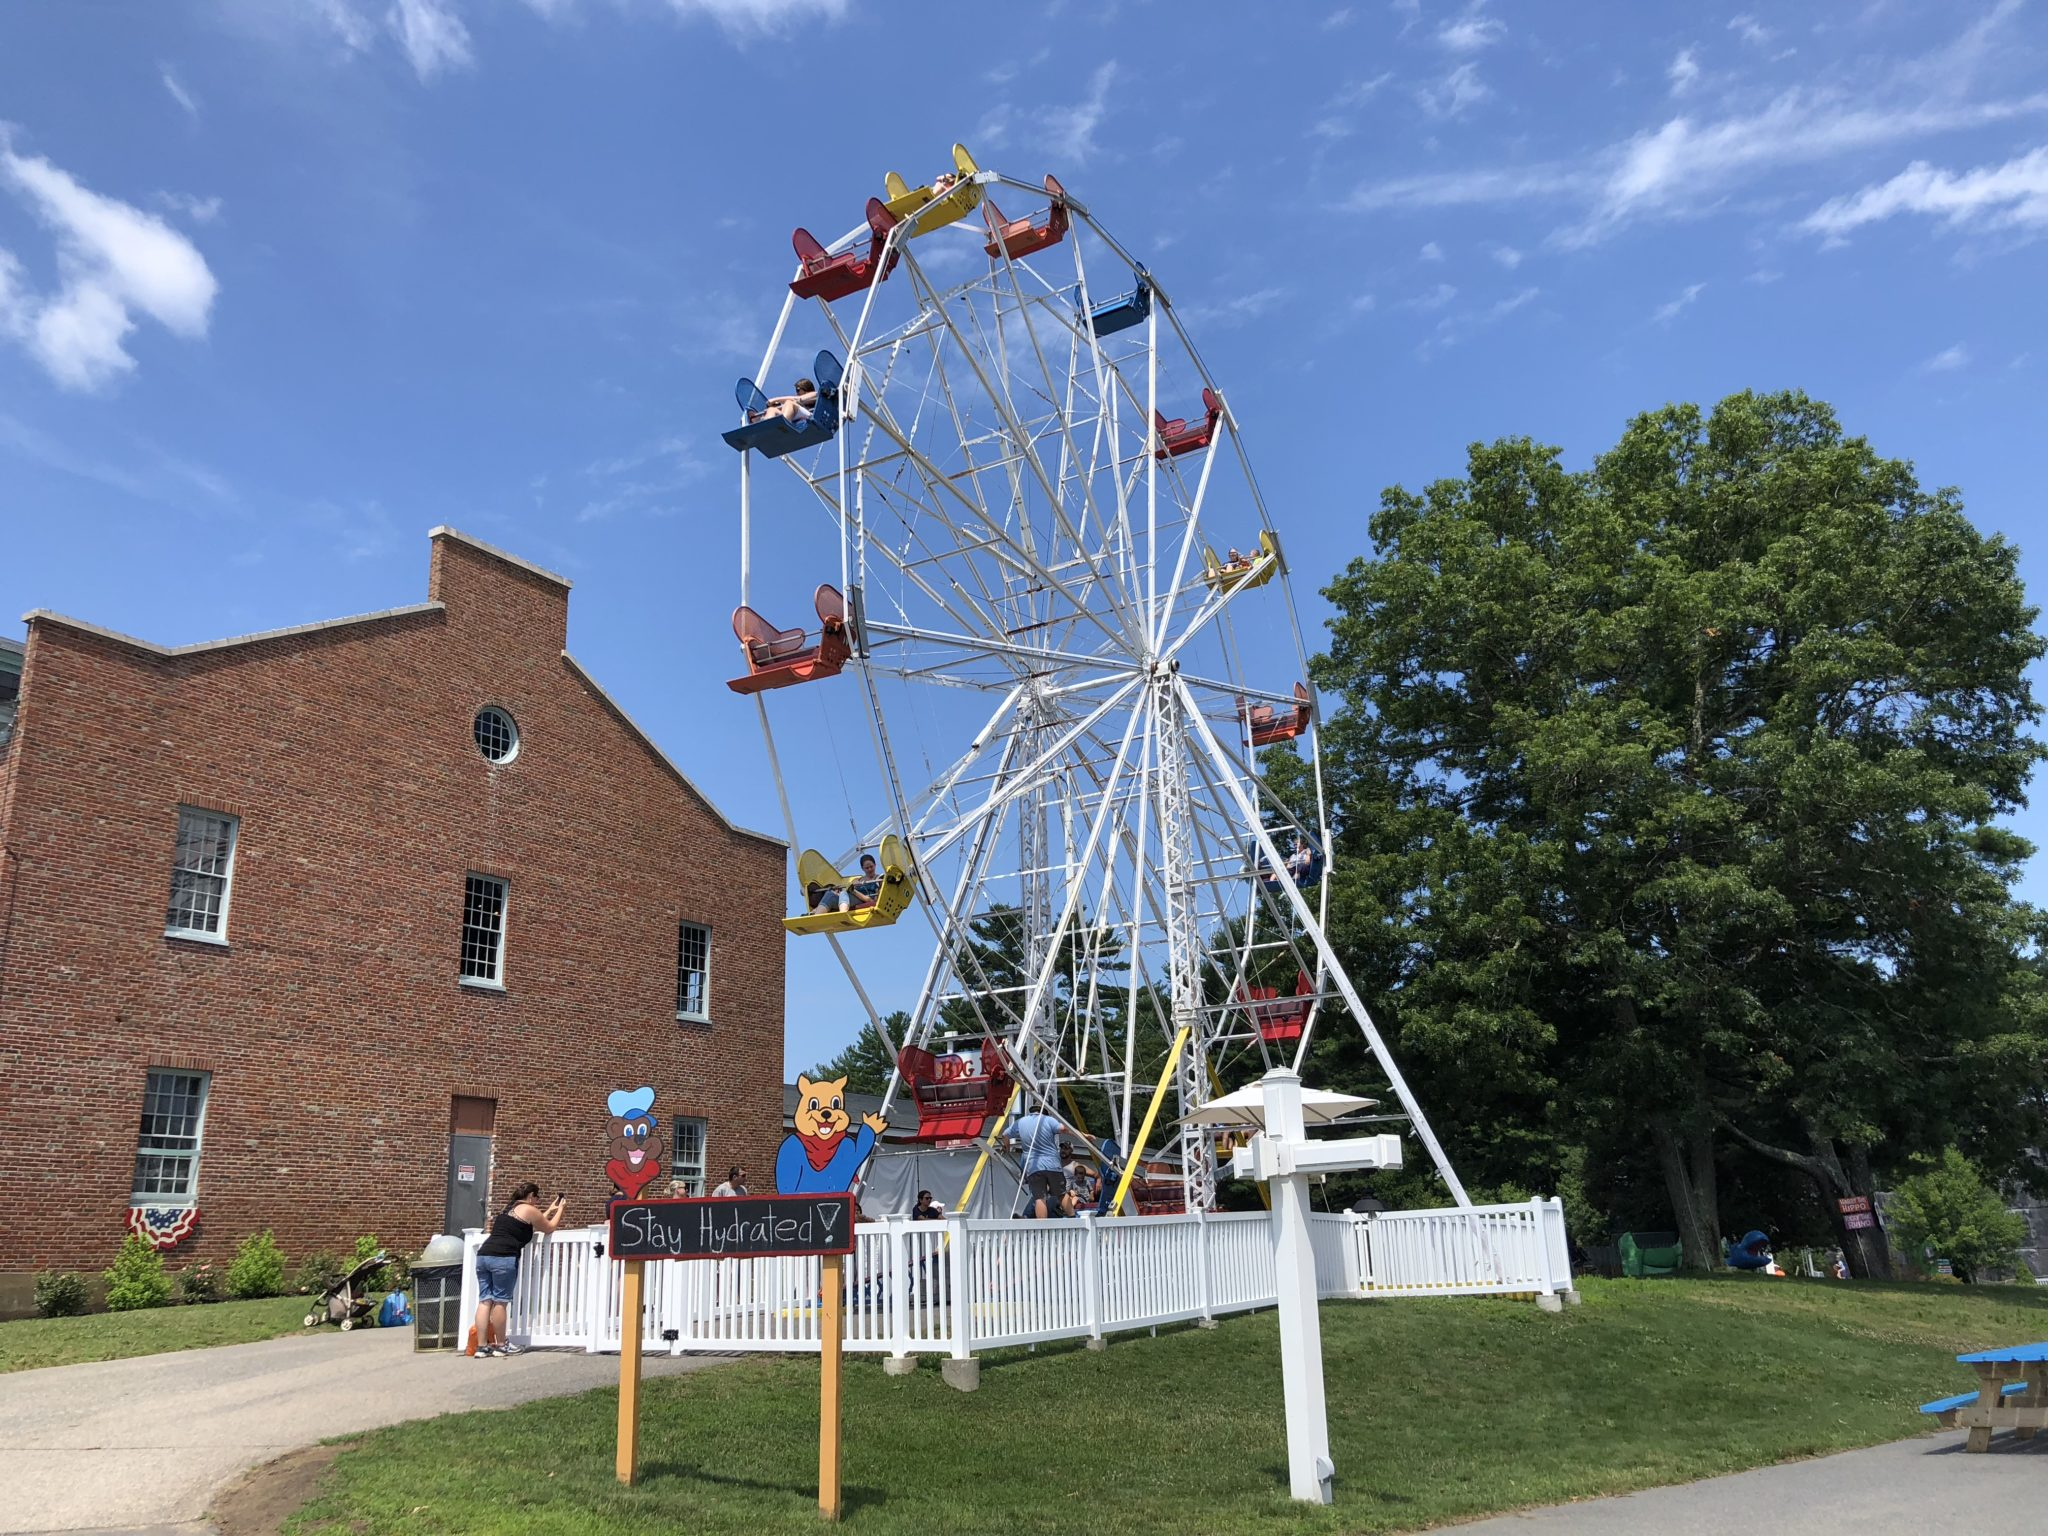 A visit to Edaville Family Theme Park is a fun way to spend the day with your family. Admission includes Thomas Land, Dino Land, all rides & attractions.